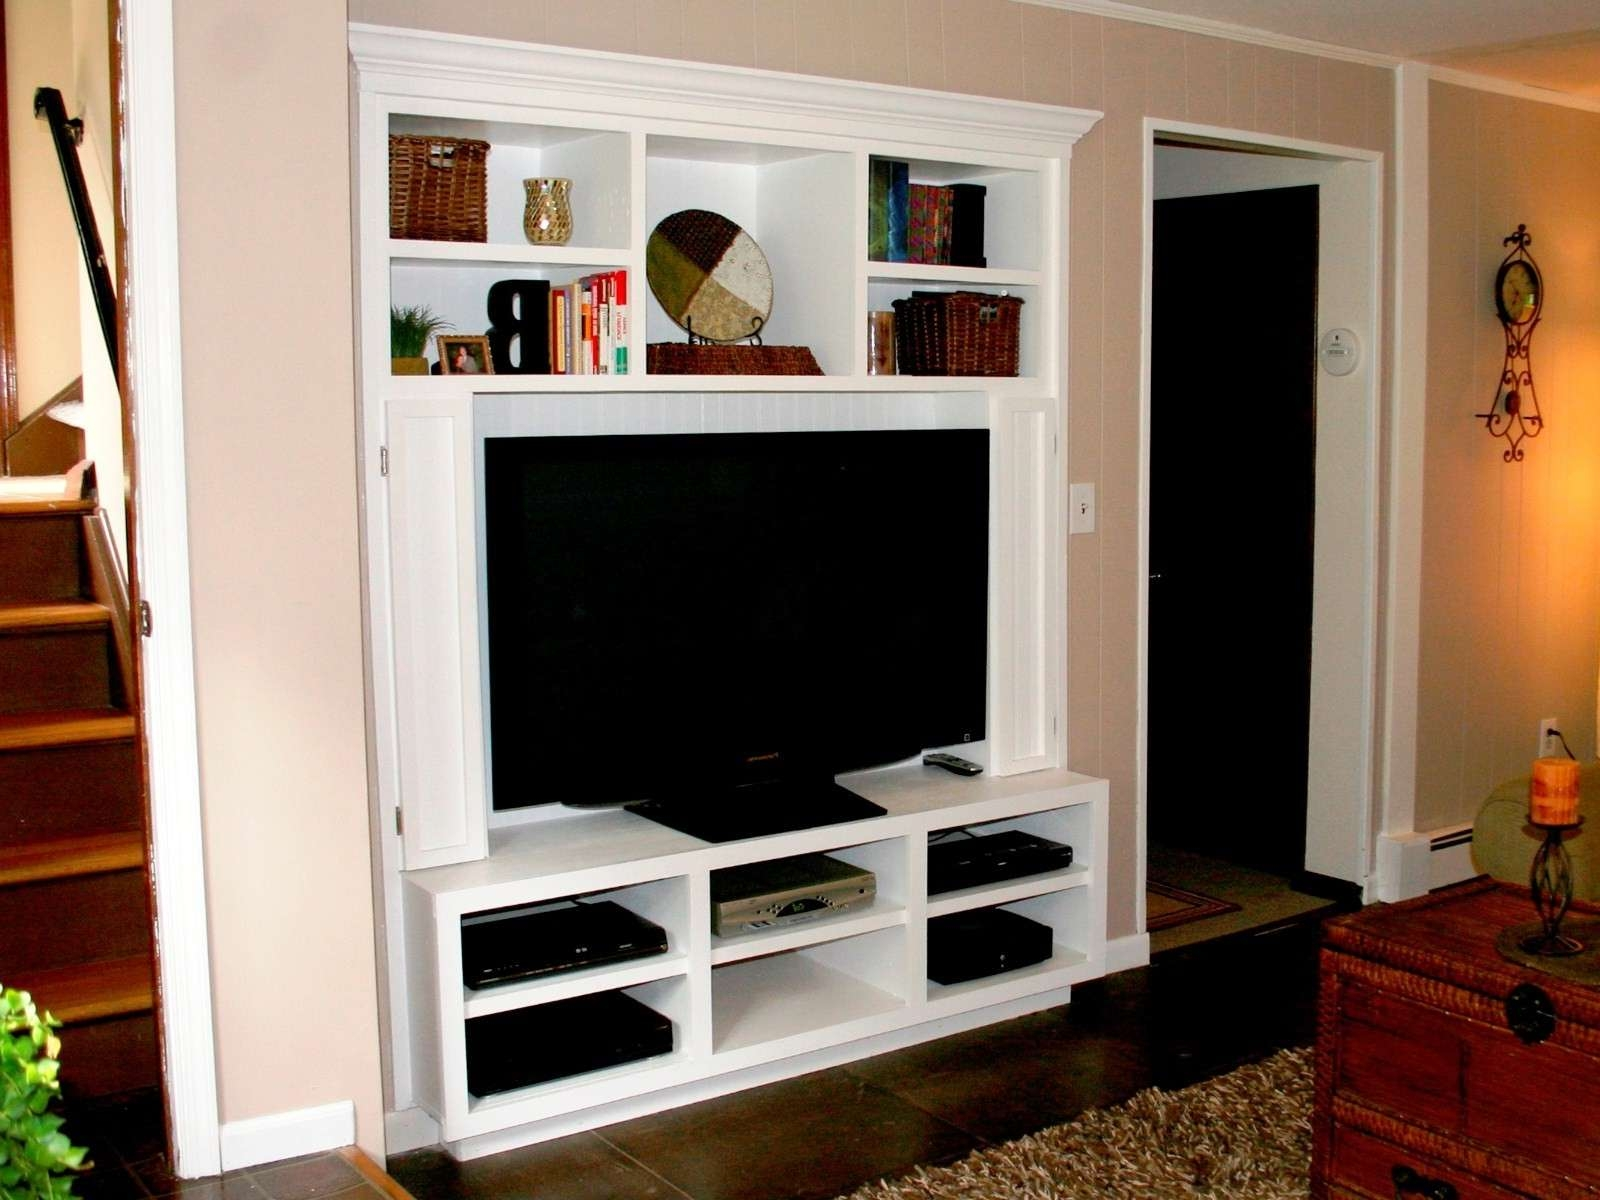 Wall Mount Flat Screen Tv Cabinet | Nytexas In Wall Mounted Tv Cabinets For Flat Screens (View 6 of 20)